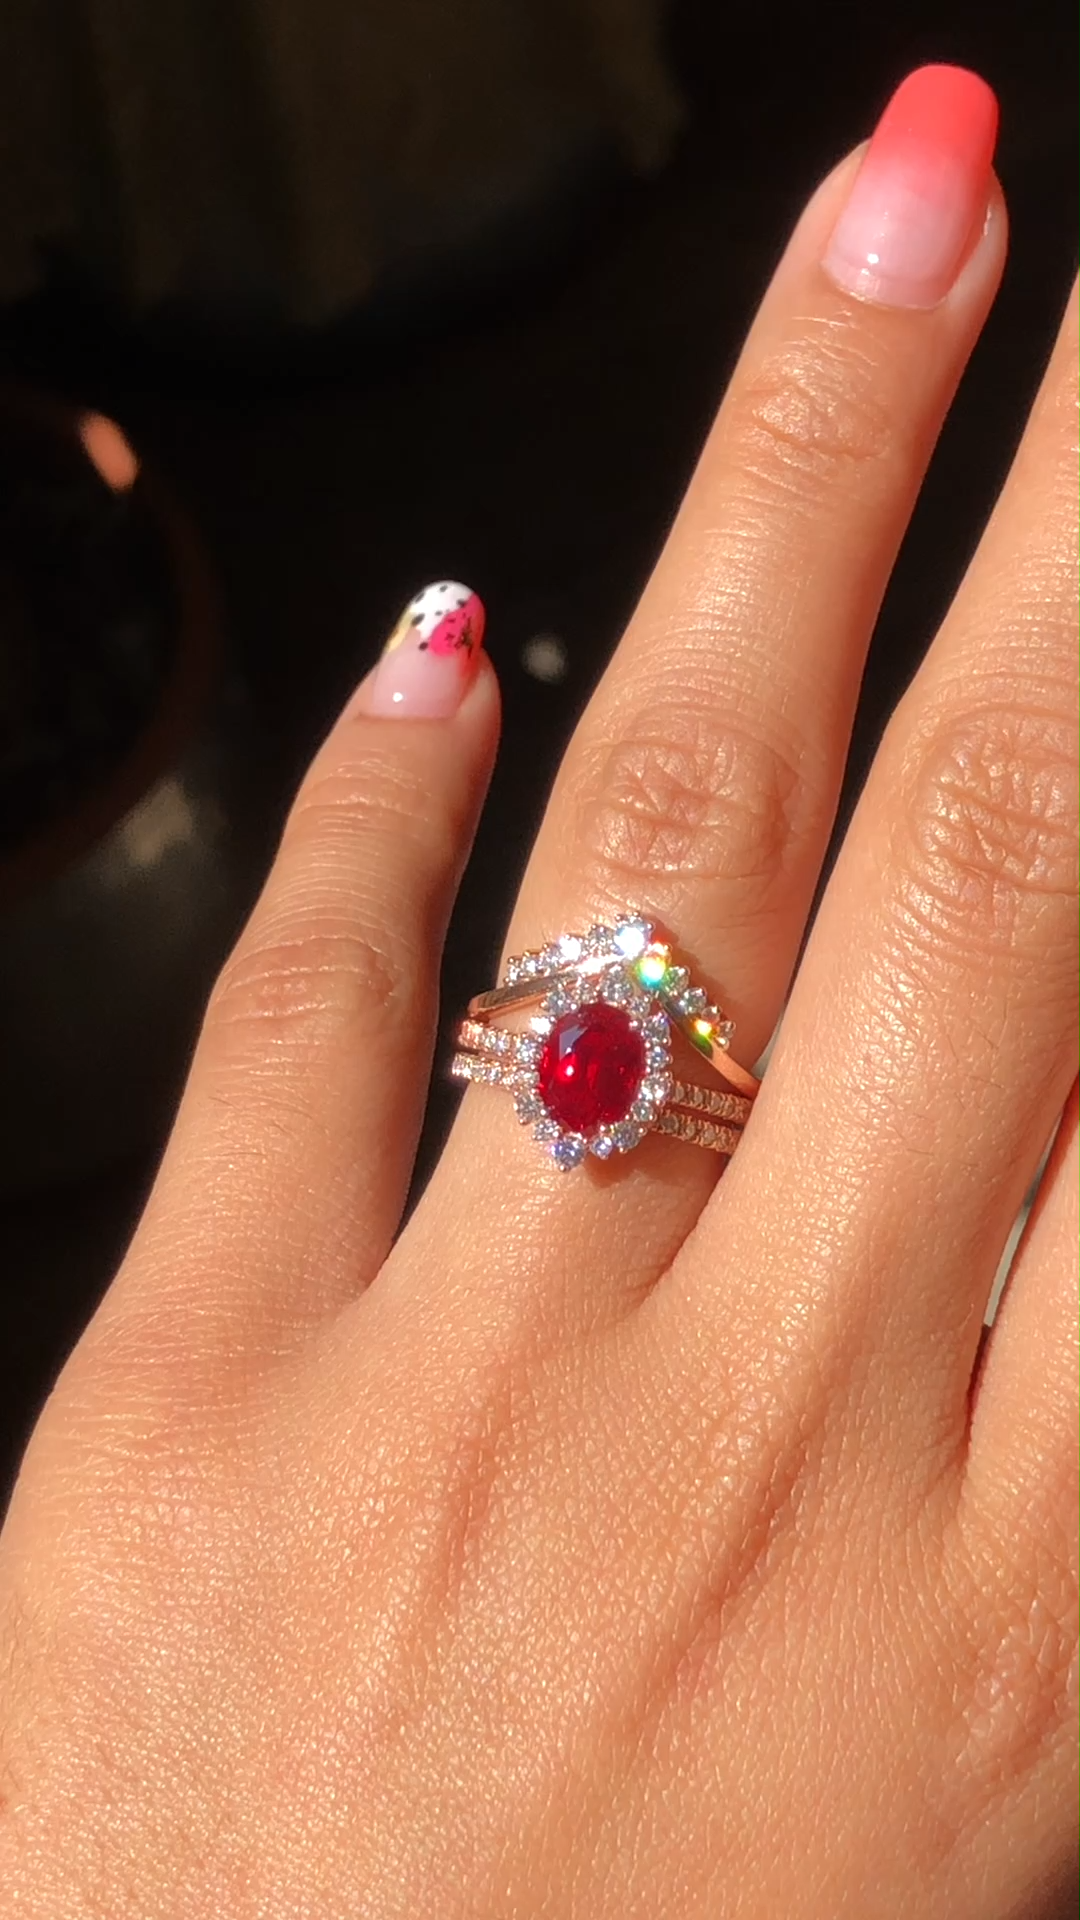 Tiara Halo Oval Cut Ruby Trio Ring Stack by La More Design